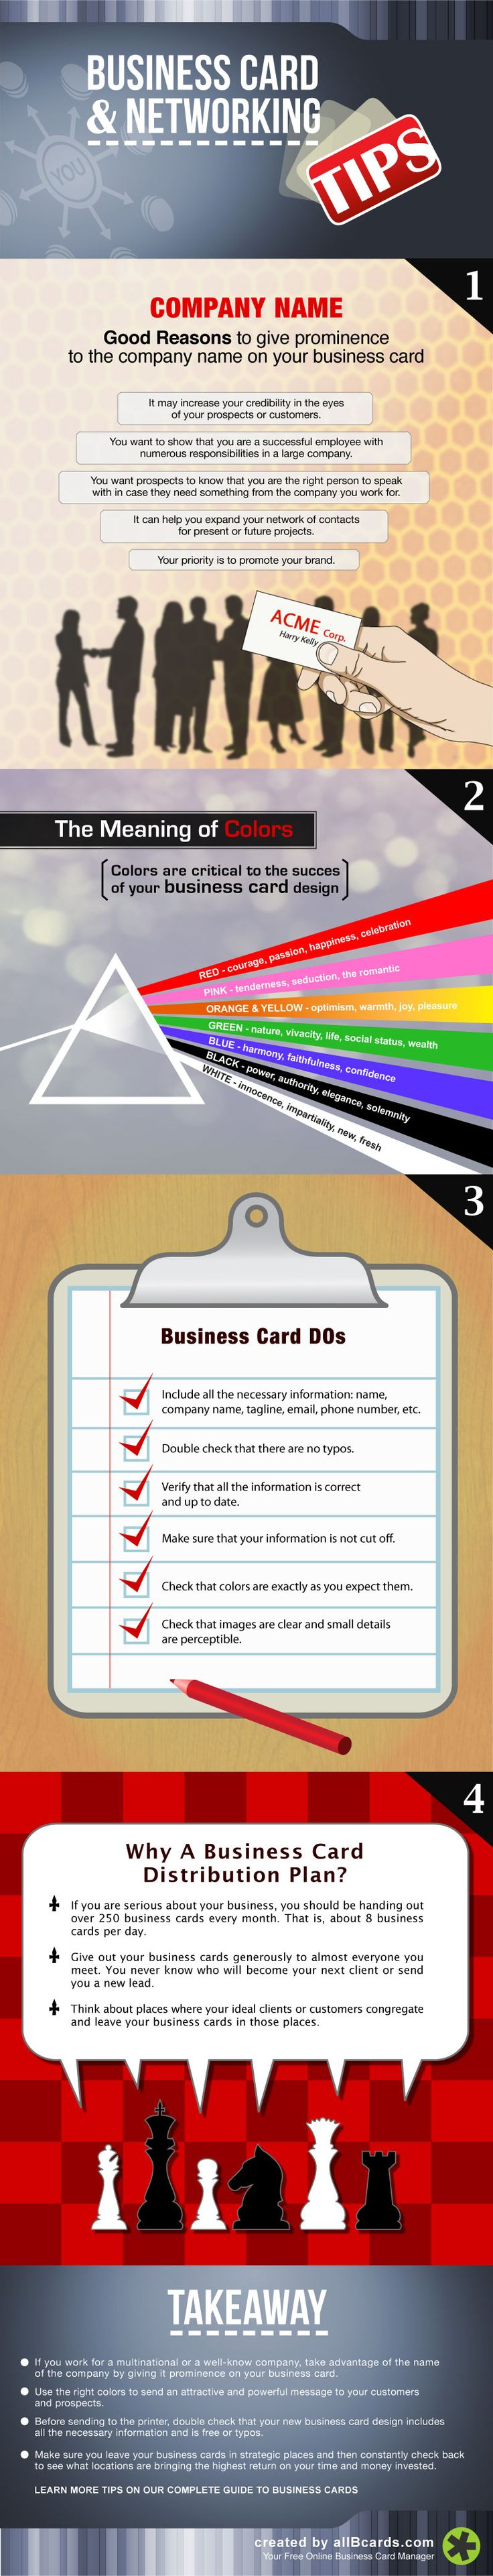 28 best INFOGRAPHICS on Business Cards. images on Pinterest ...